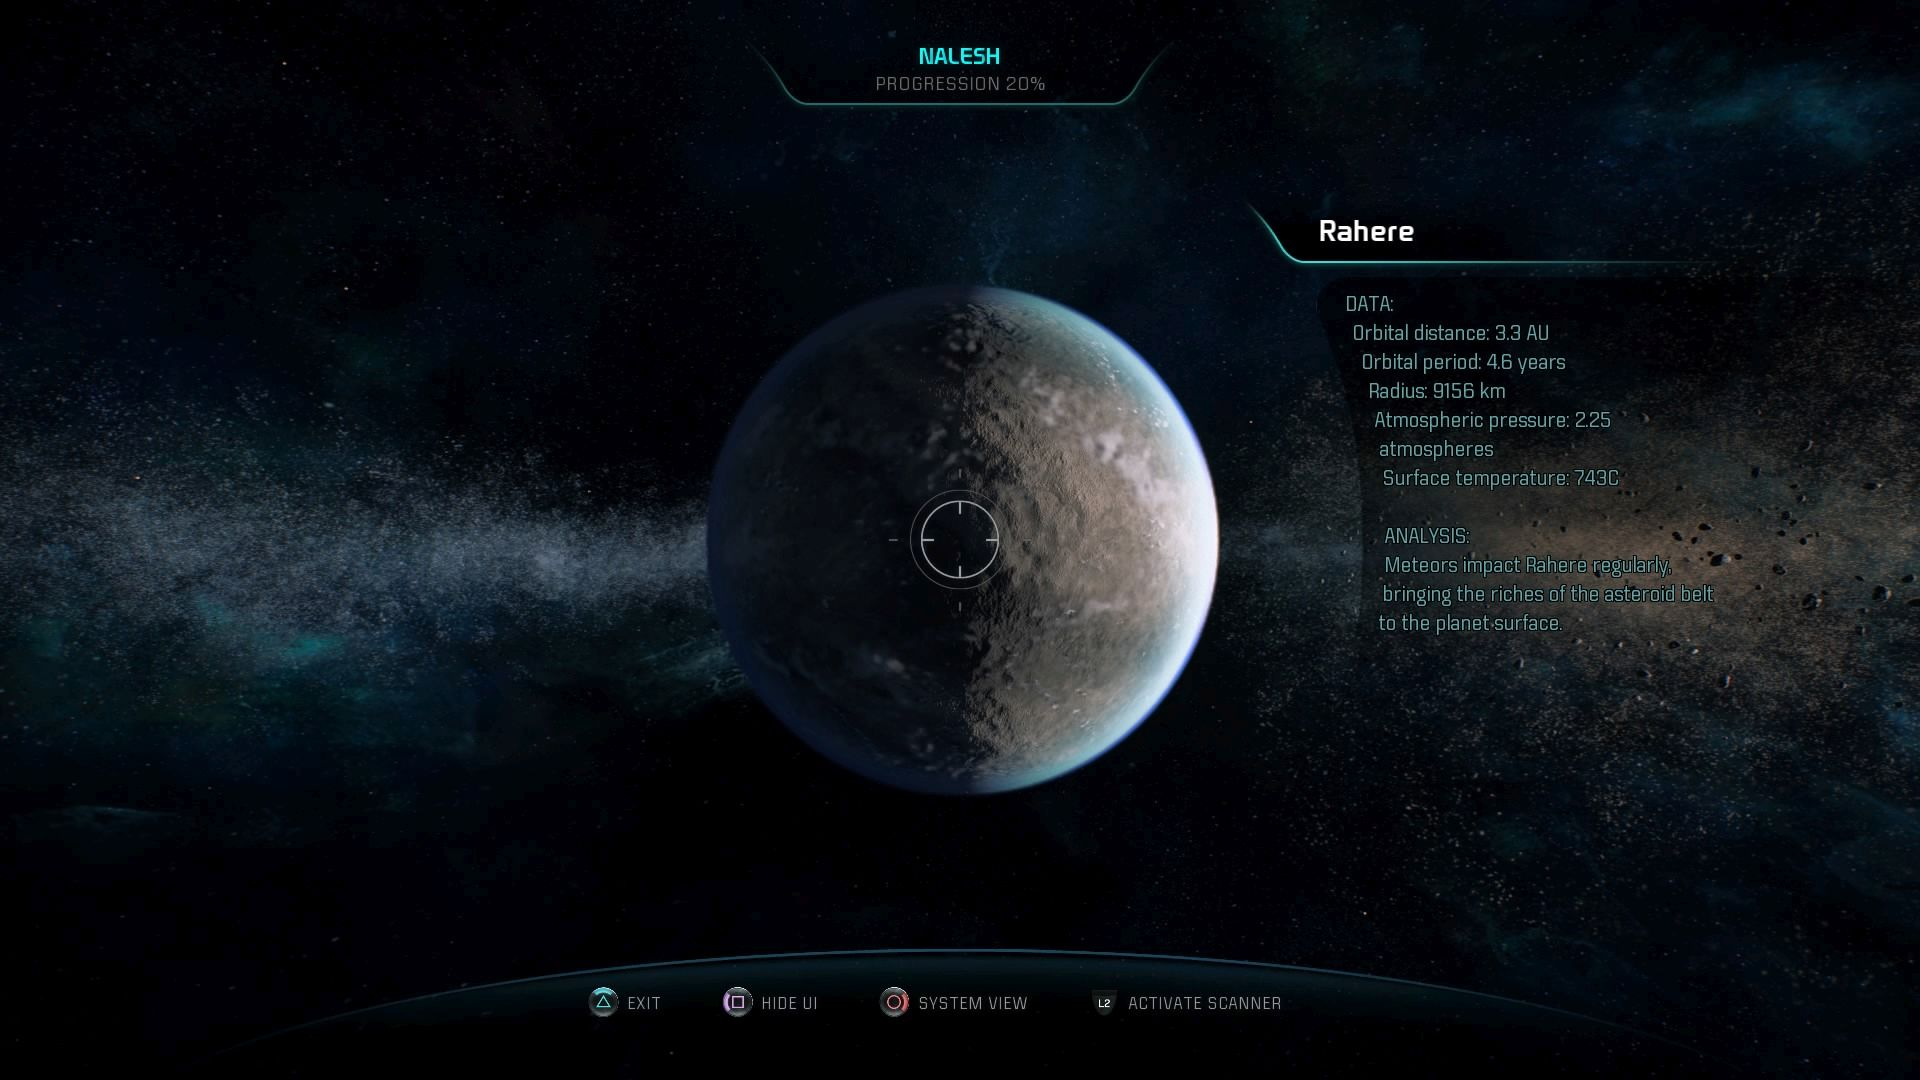 Mass Effect Andromeda Star Map.Thoughts Mass Effect Andromeda The Scientific Gamer